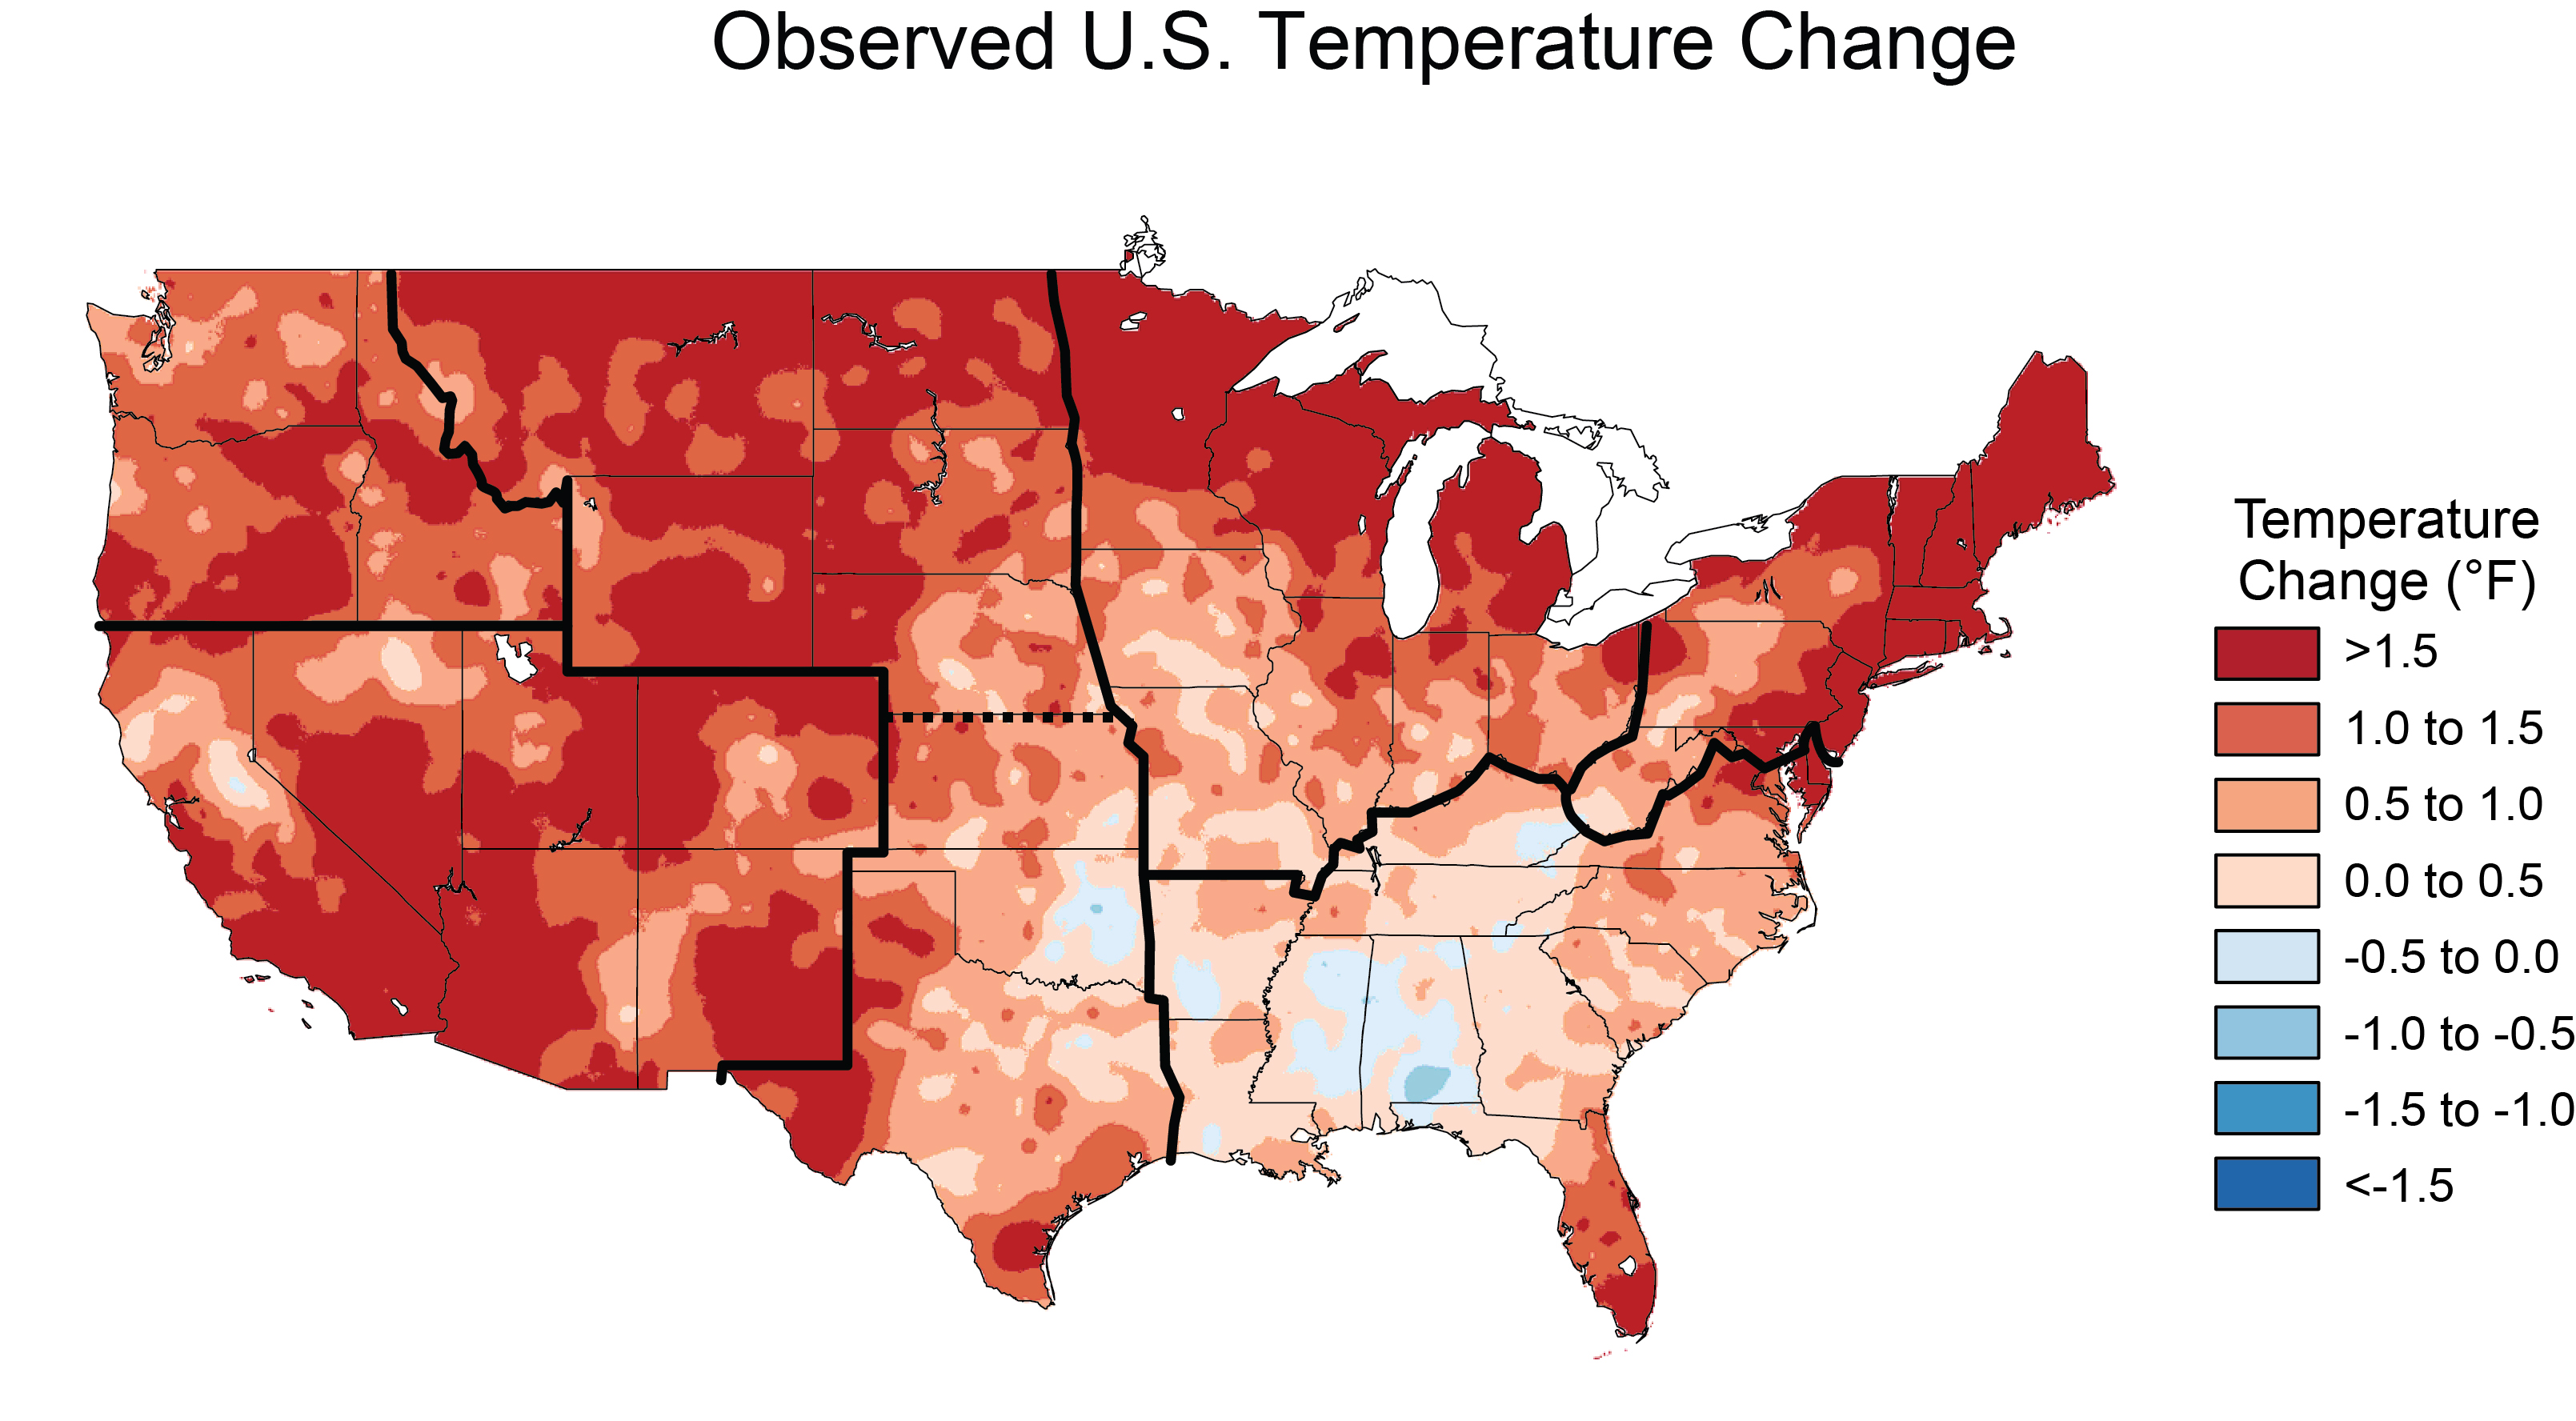 Climate Changes In The United States Image Of The Day - Color temperature us voting map